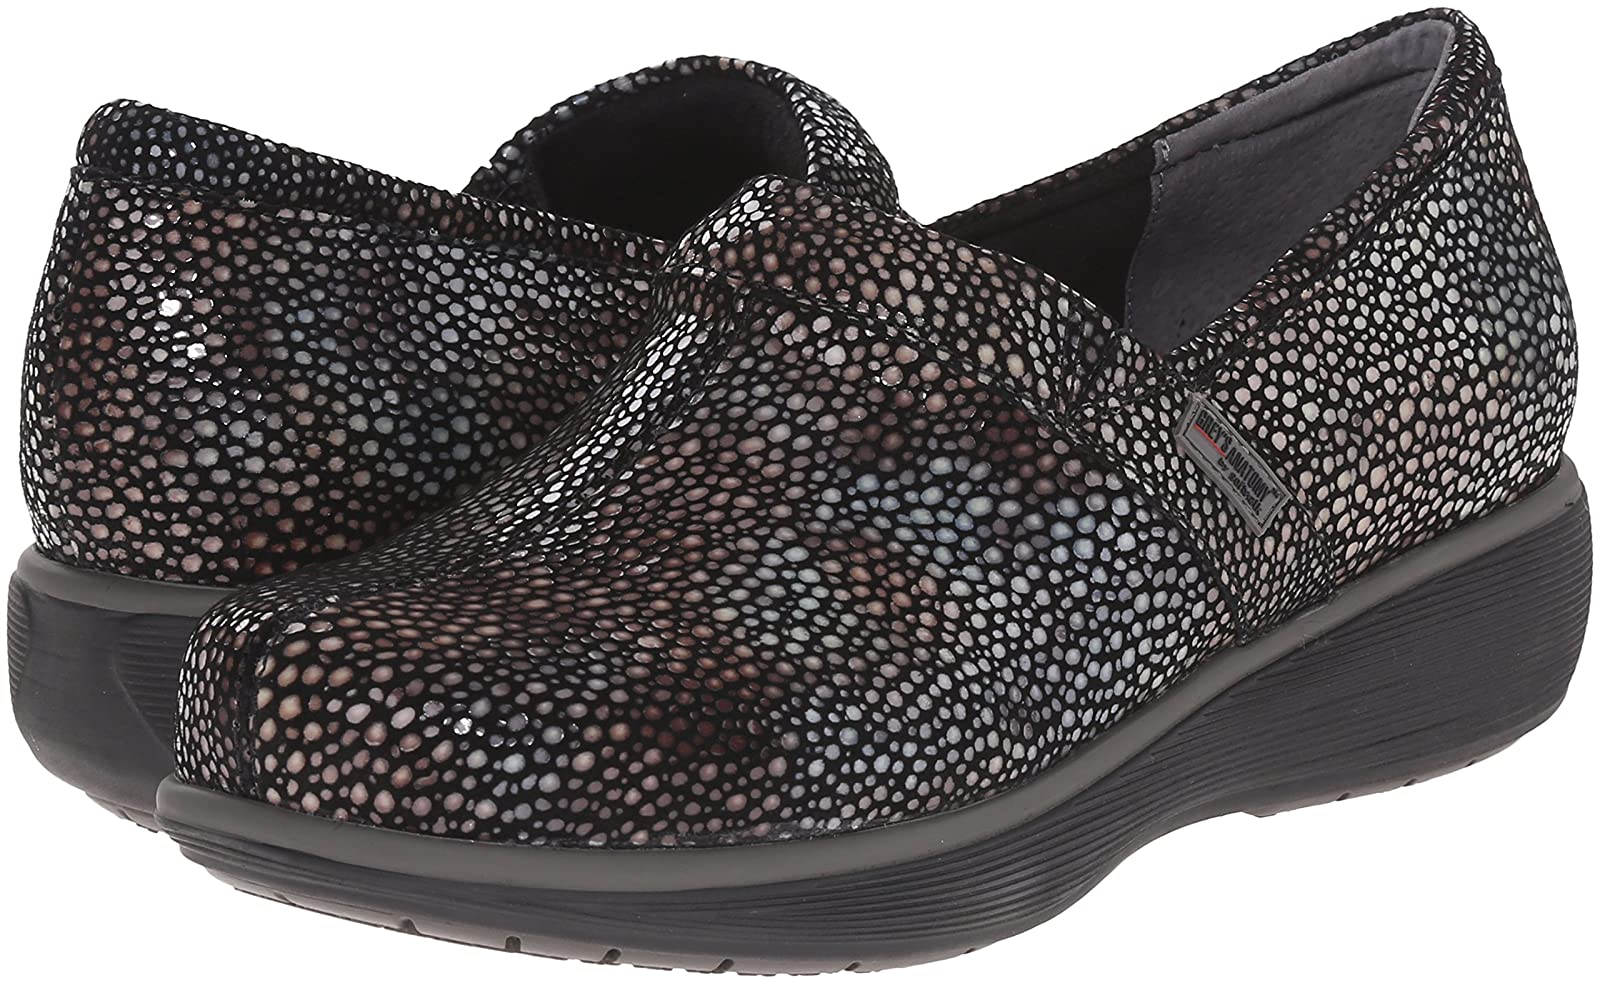 SoftWalk Women's Meredith Clog Multi Mosaic - 6